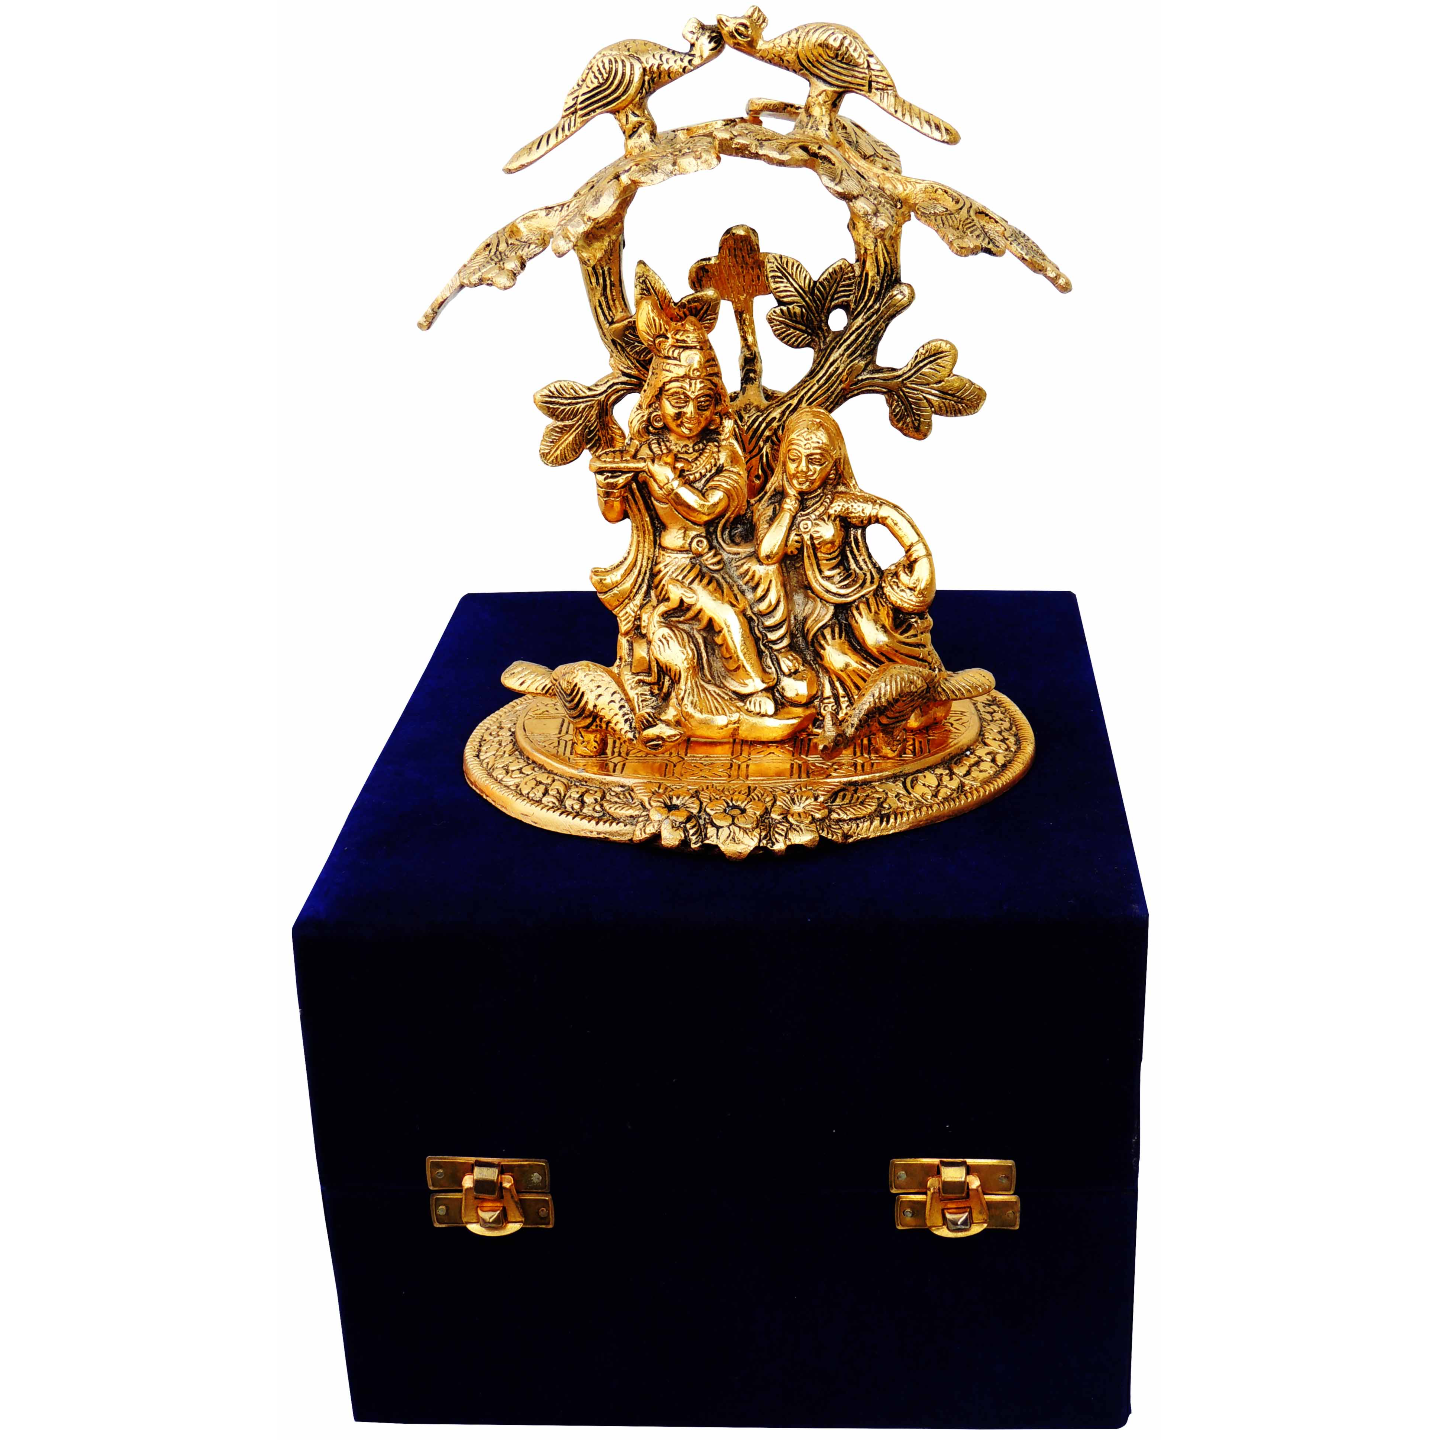 Aluminium Radha Krishna Sitting Under Tree In Gold Antique Finish With Blue Velvet Box - 7.55.58 Inch AS134 G